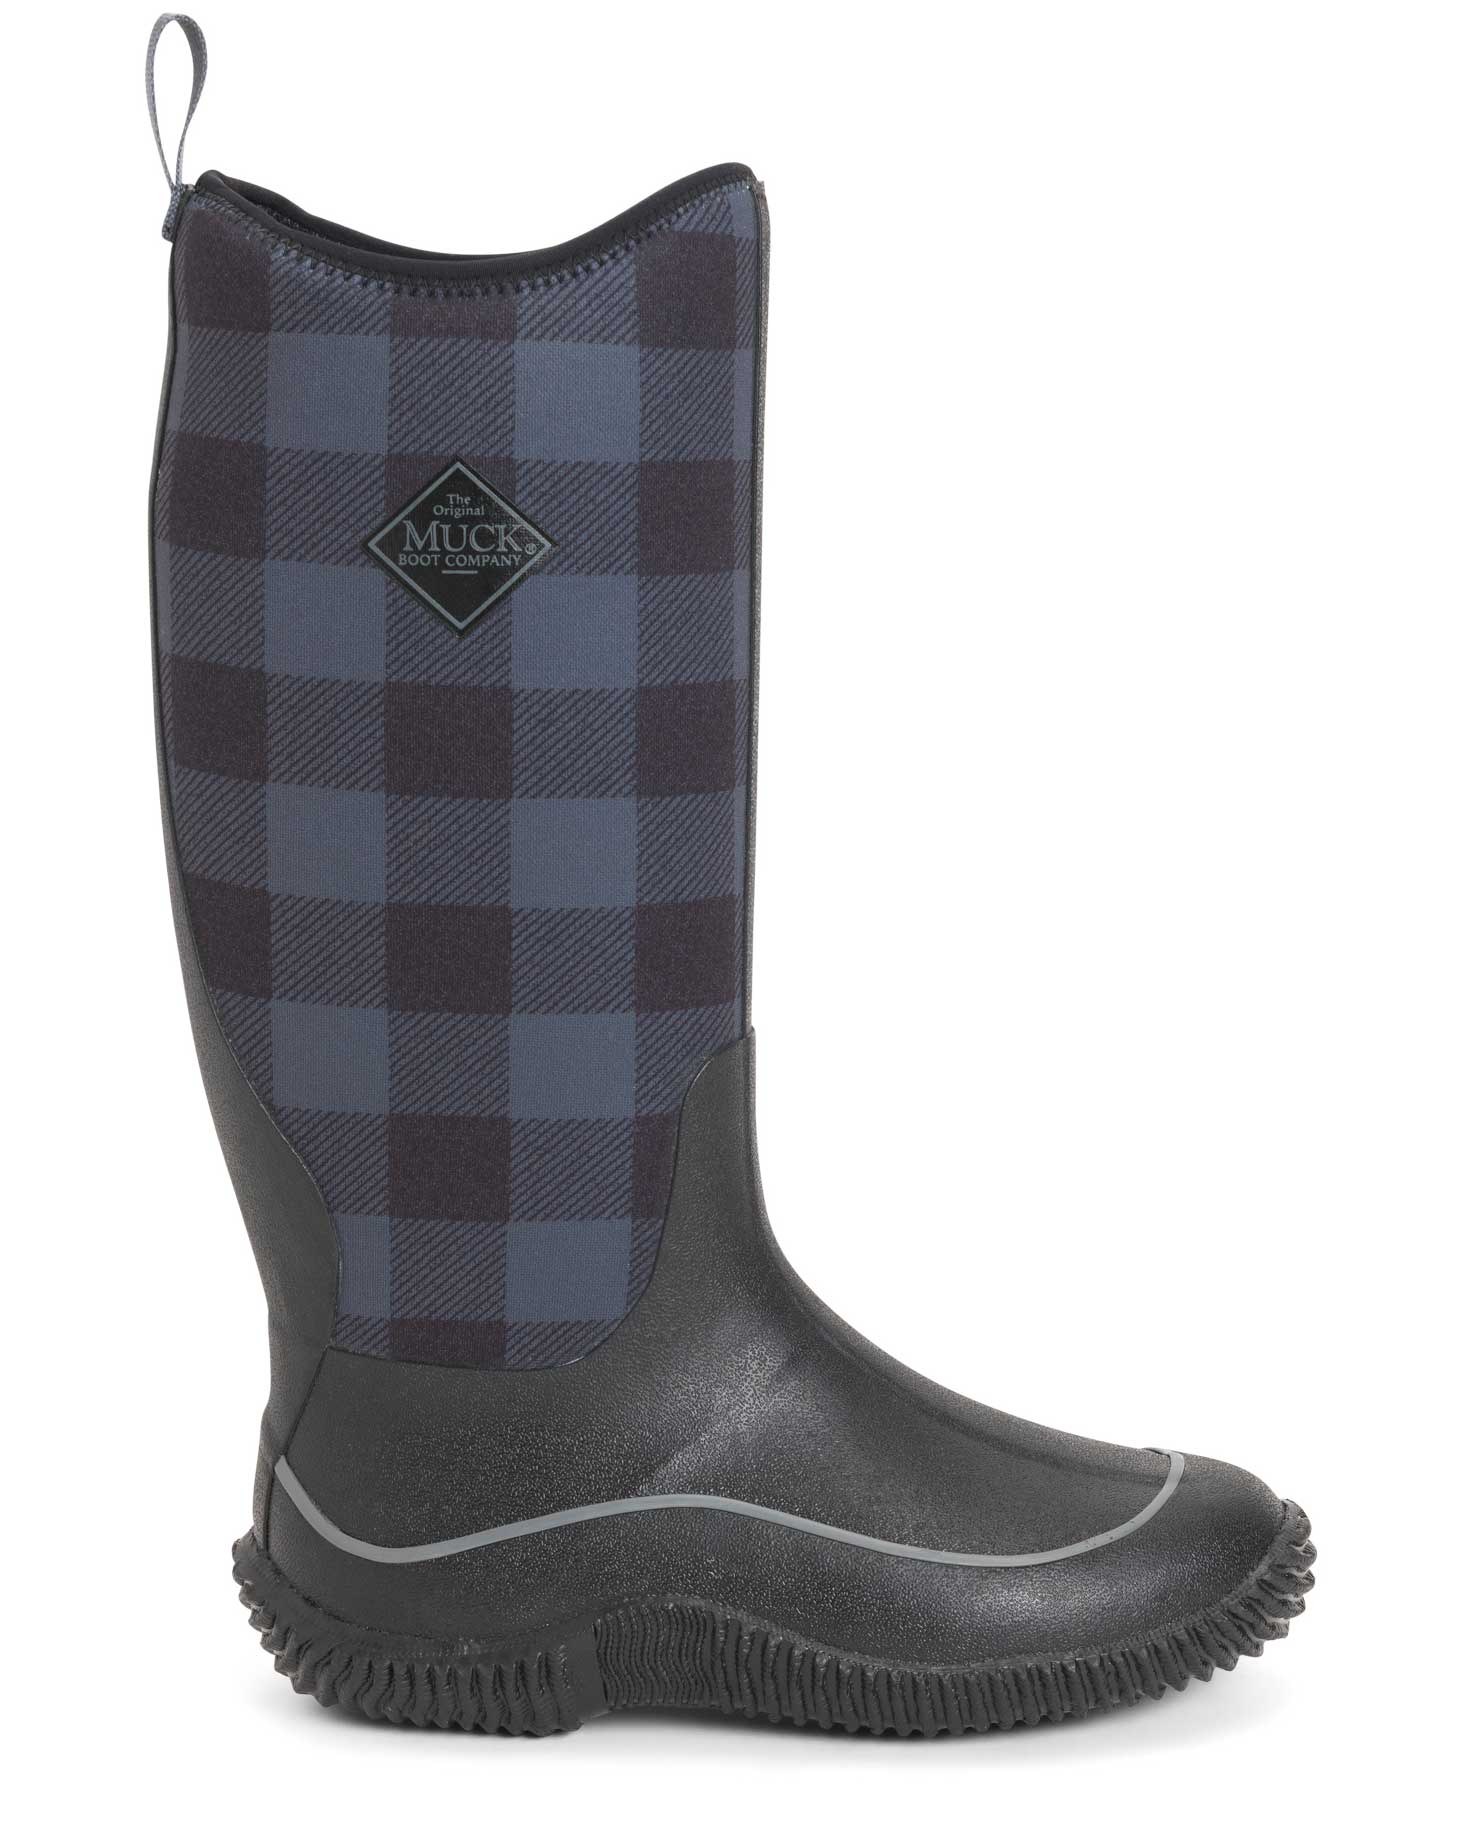 Hale Plaid Tall Gumboots